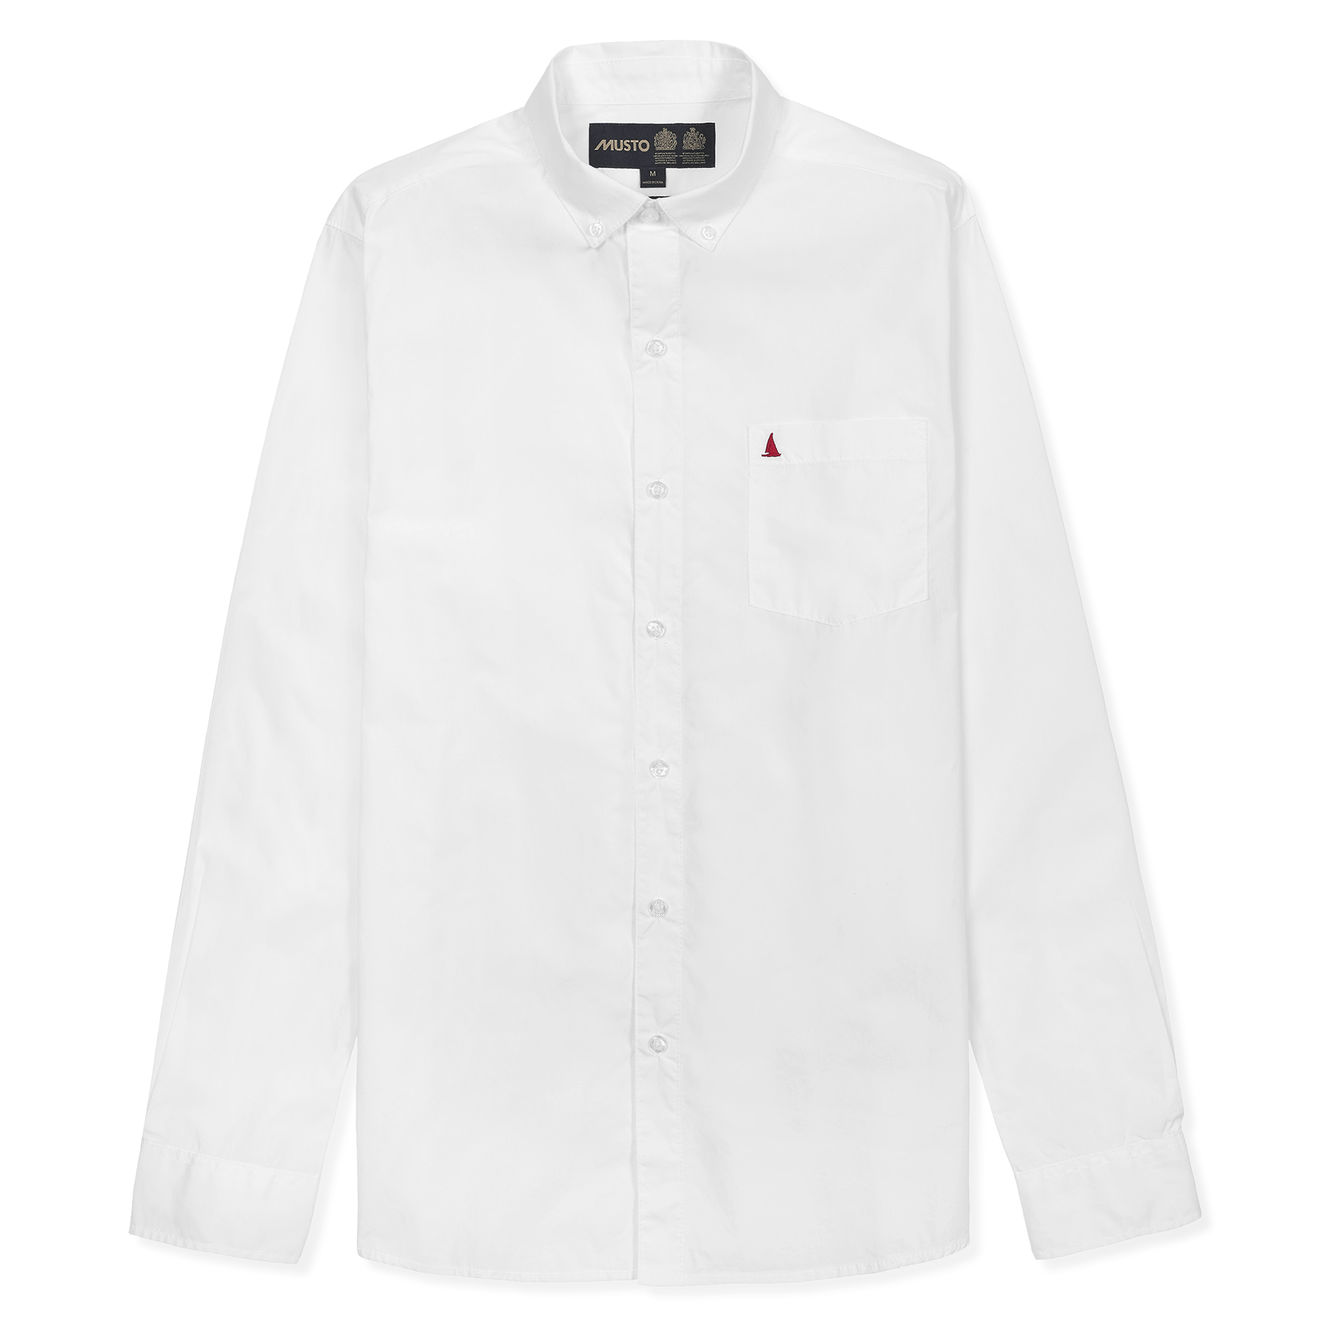 POPLIN BUTTON DOWN LS SHIRT